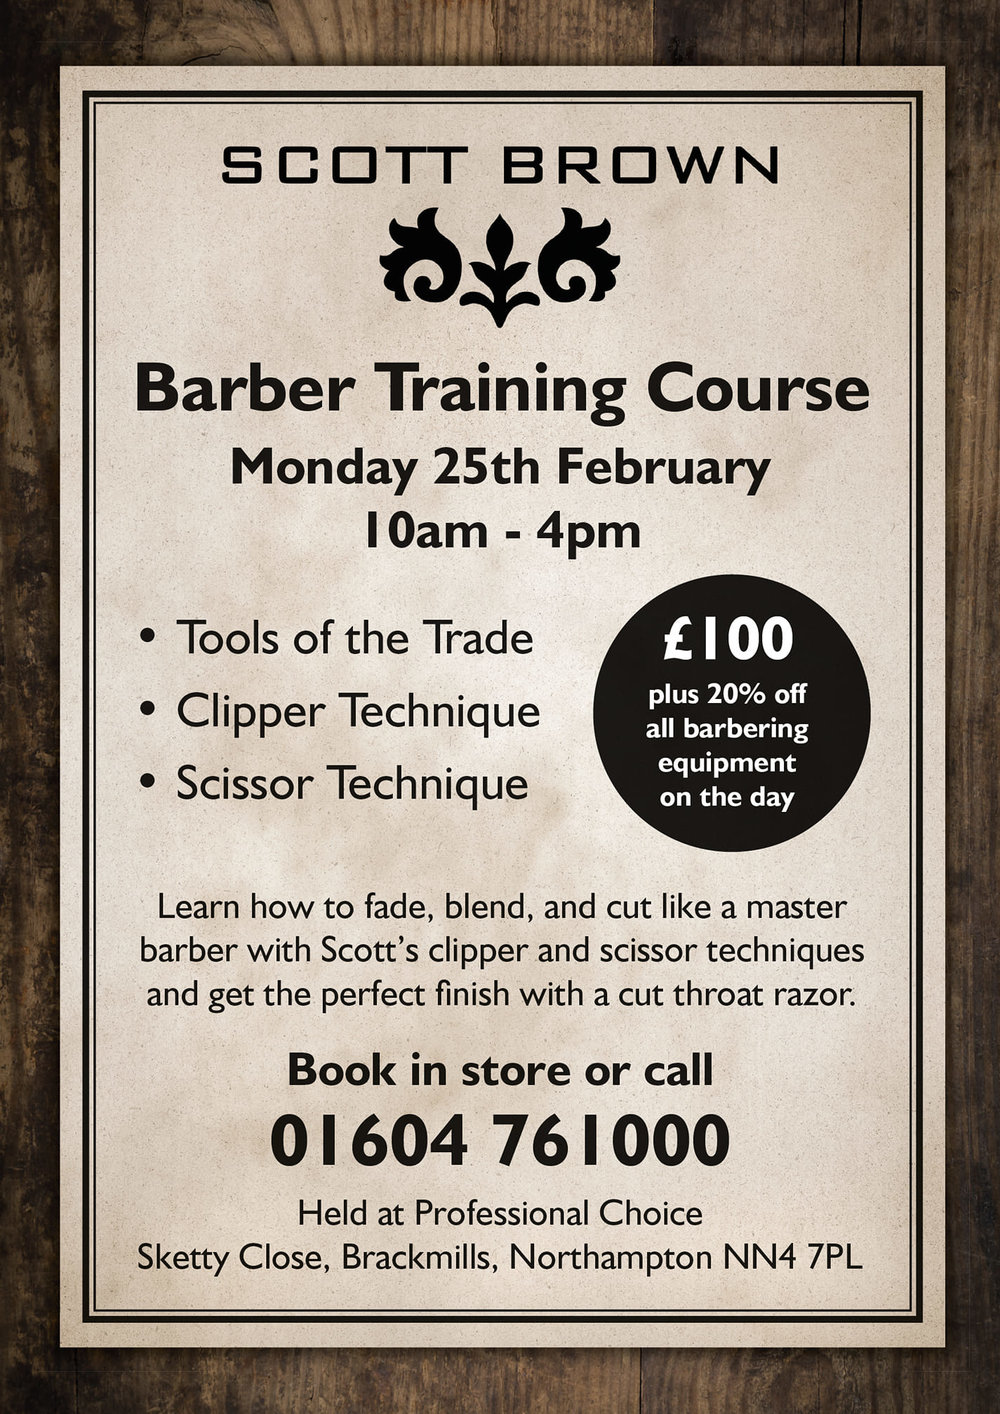 barber-training-course-northampton-february-2019.jpg